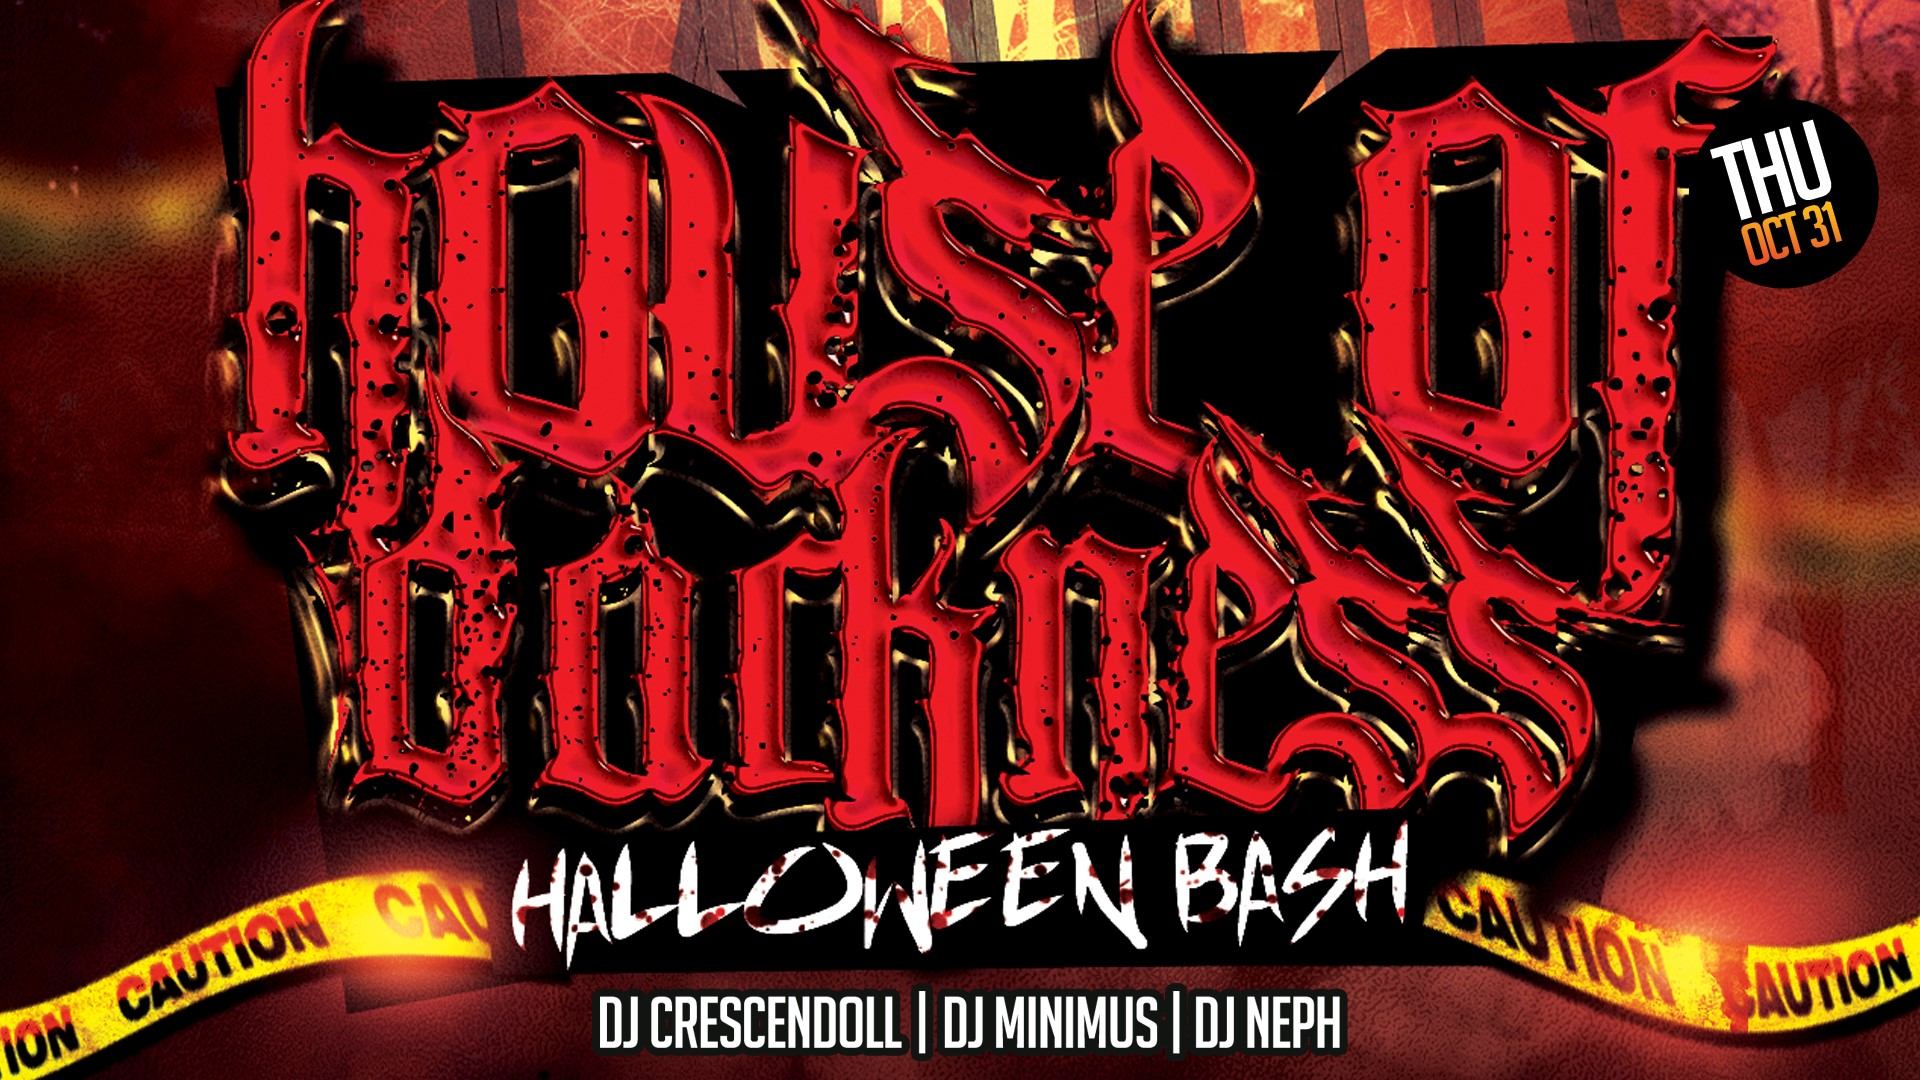 House of Darkness - Halloween Bash